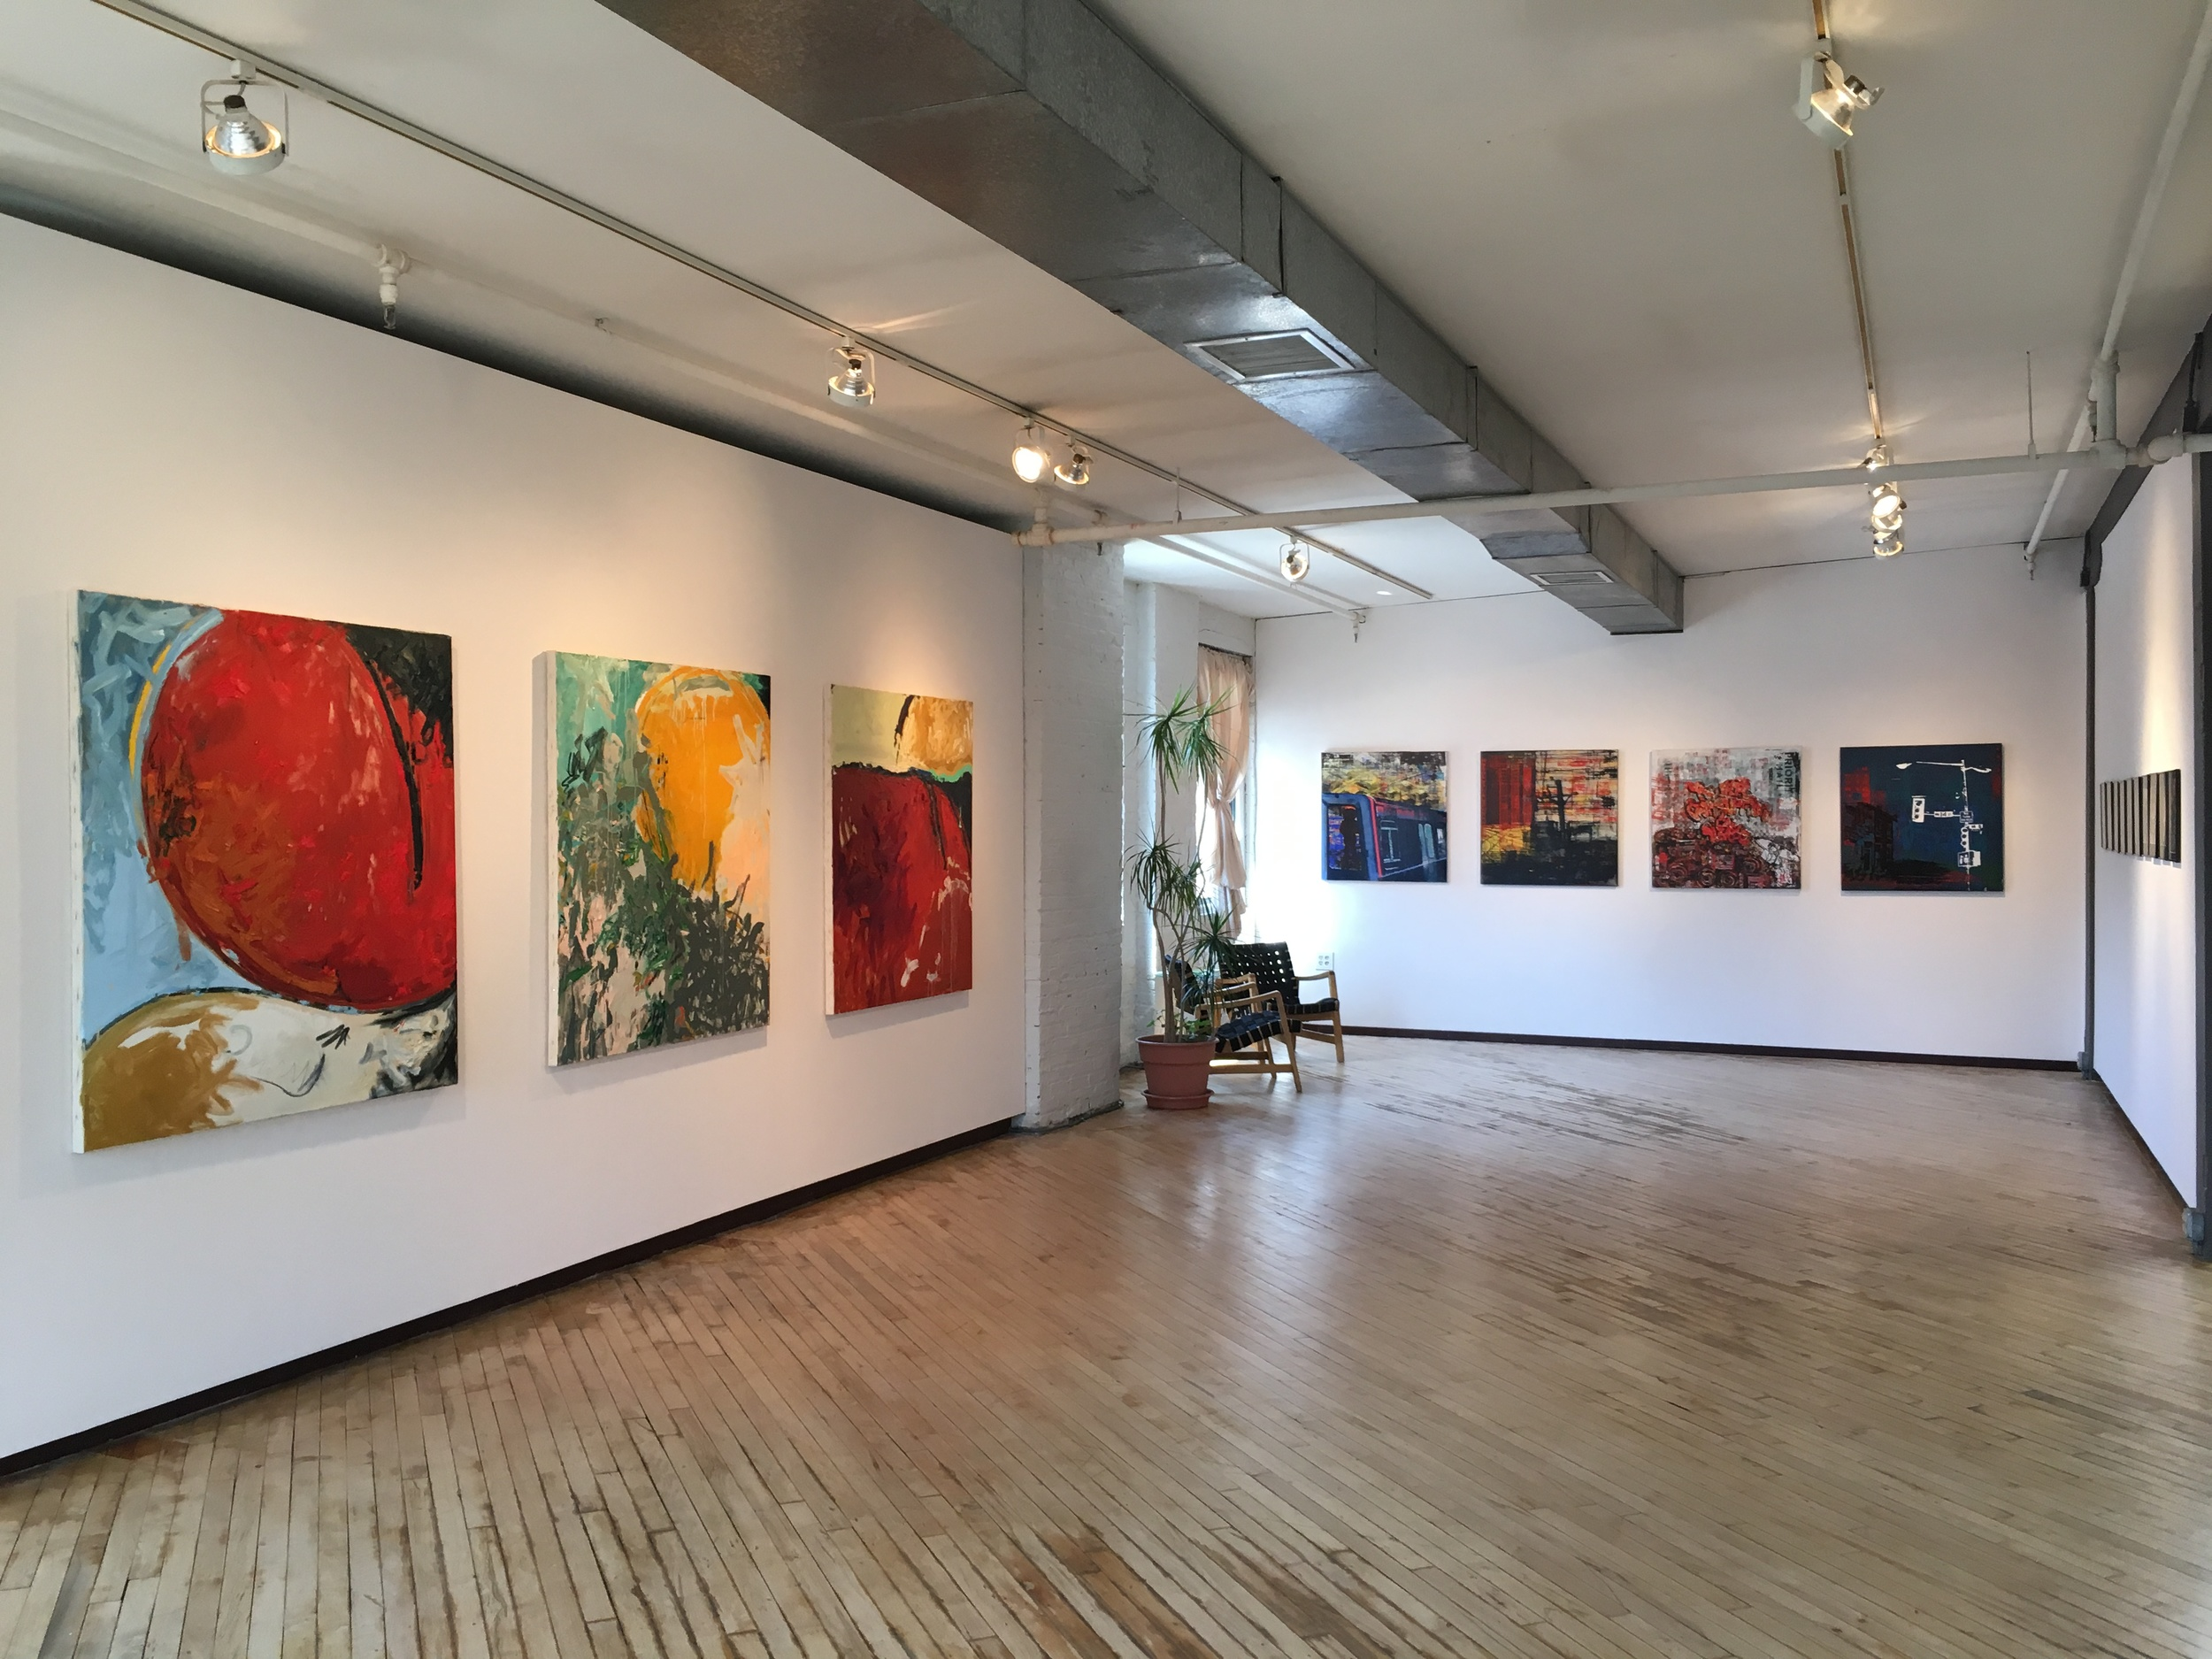 Installation View (west gallery)